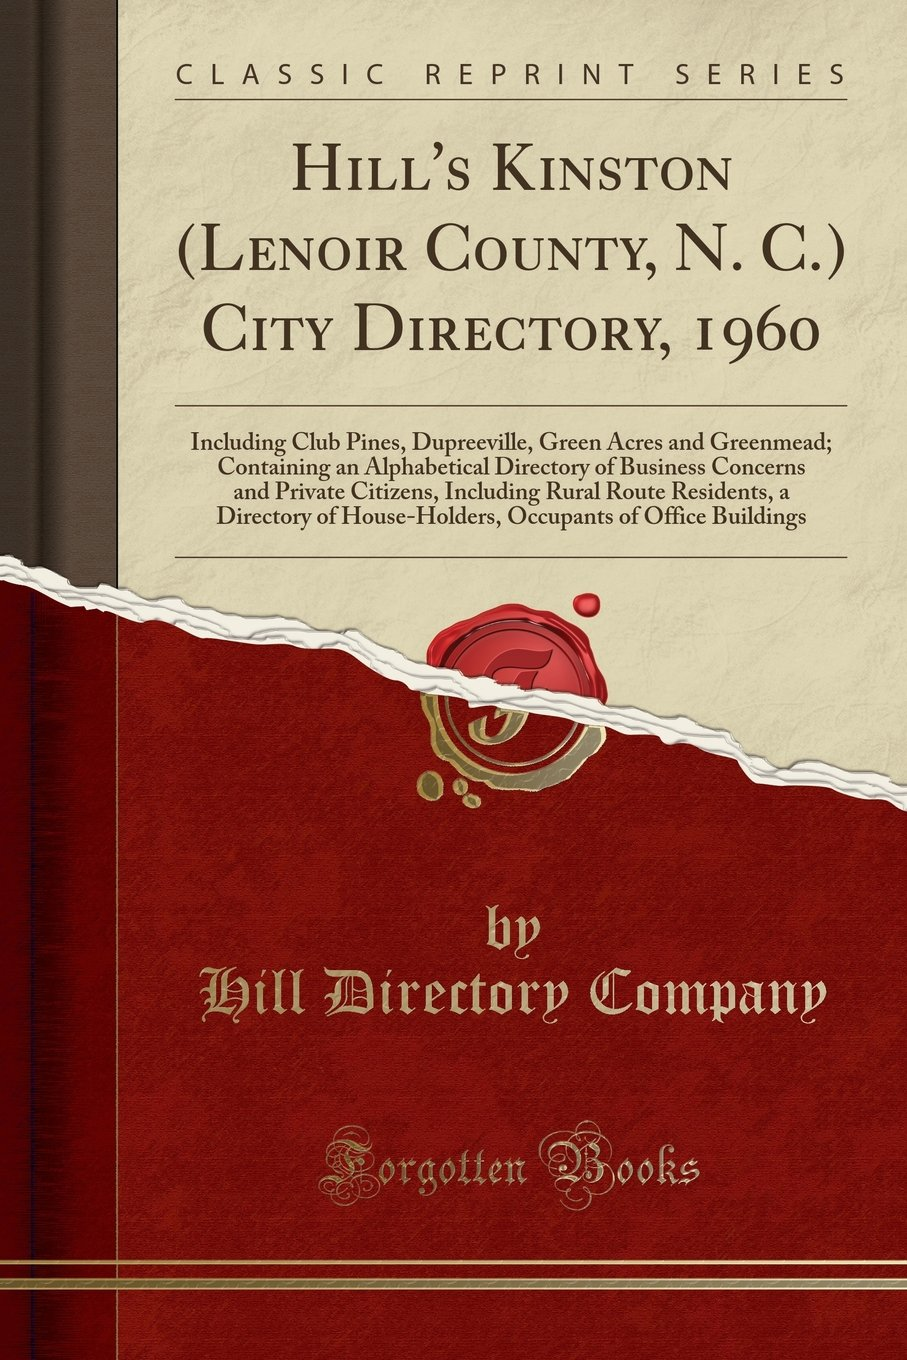 Read Online Hill's Kinston (Lenoir County, N. C.) City Directory, 1960: Including Club Pines, Dupreeville, Green Acres and Greenmead; Containing an Alphabetical ... Rural Route Residents, a Directory of House pdf